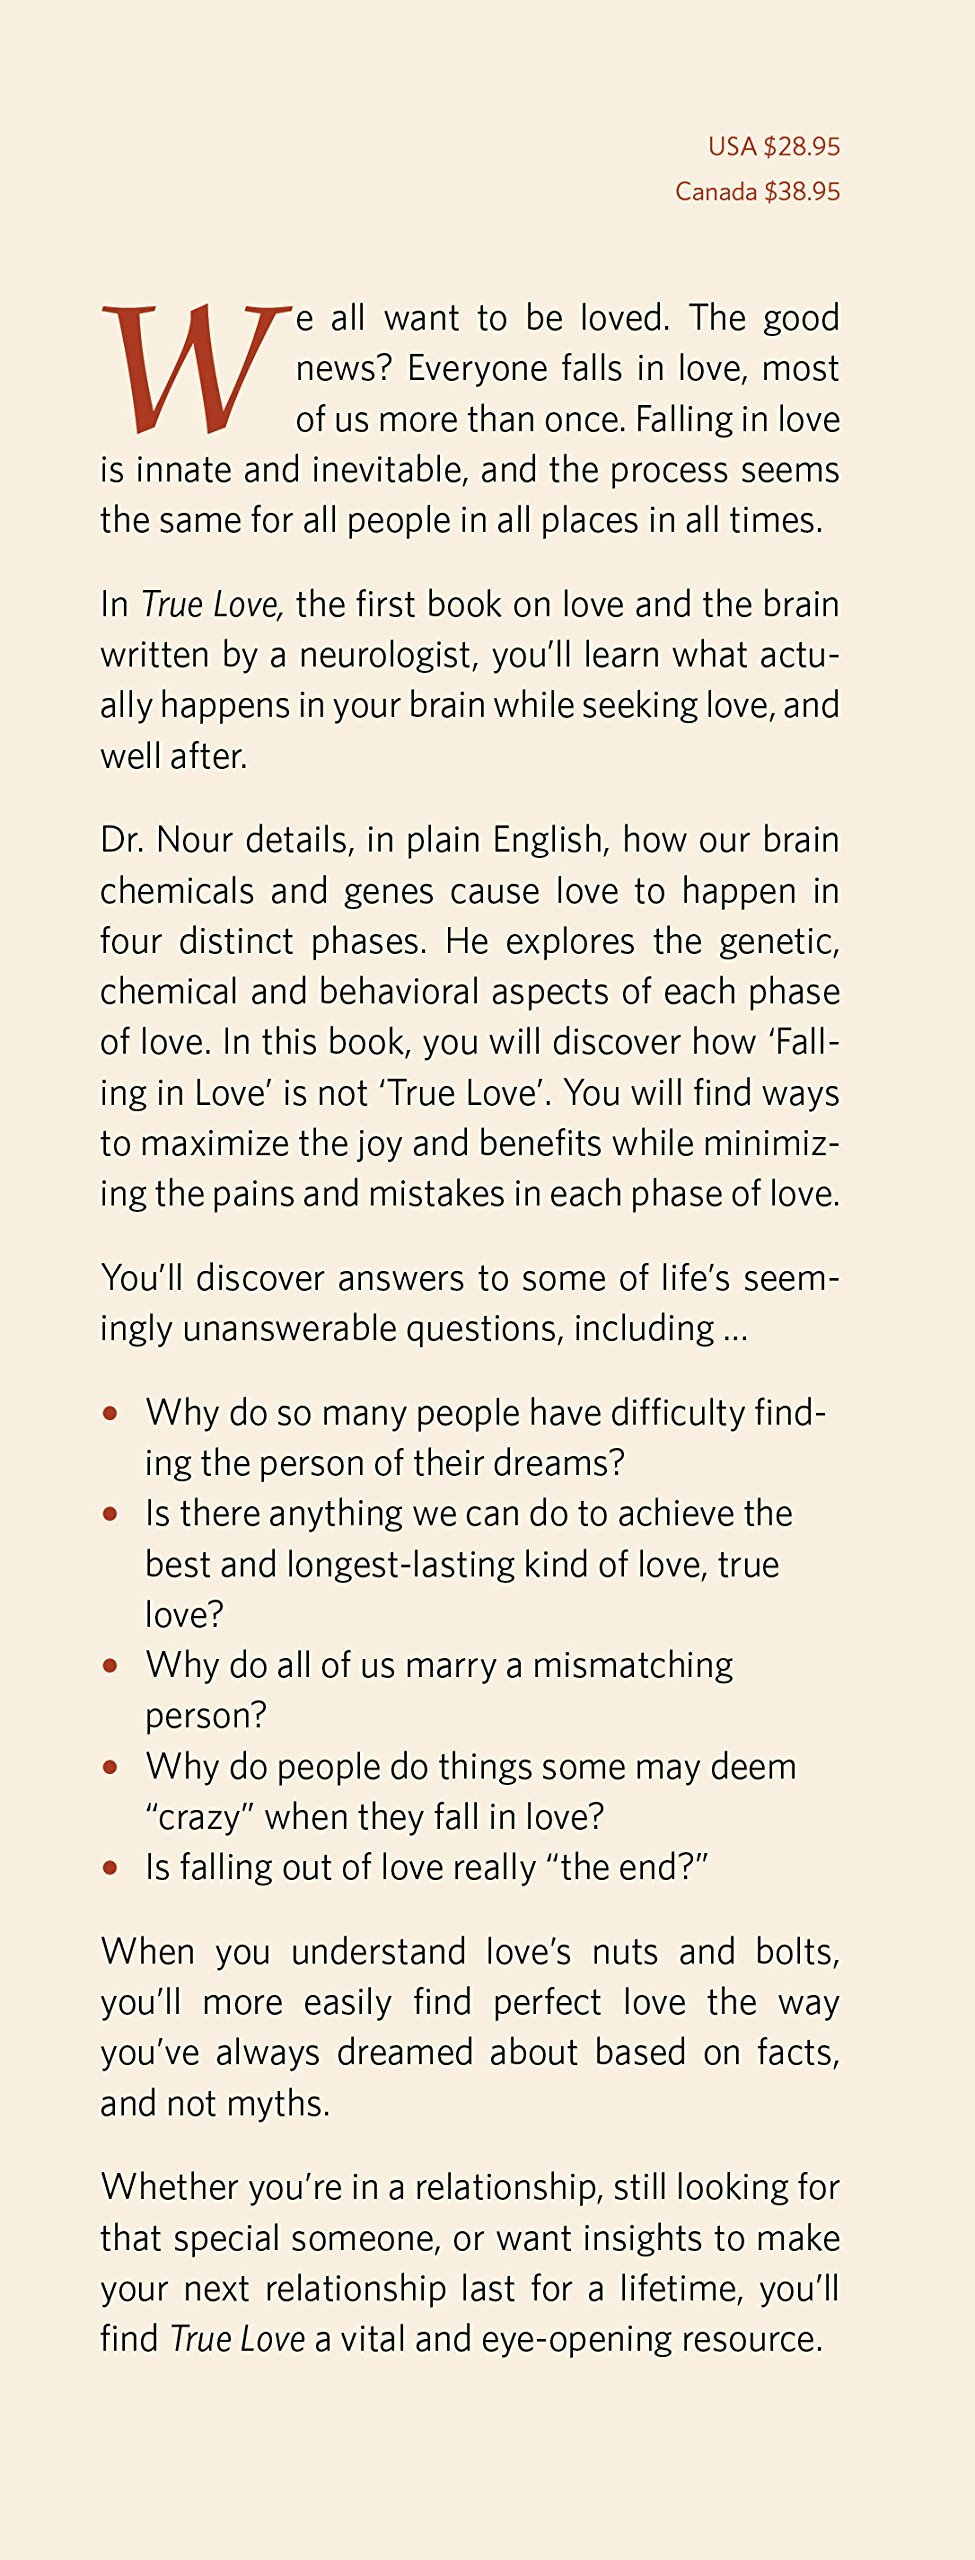 How to make a doctor fall in love with you